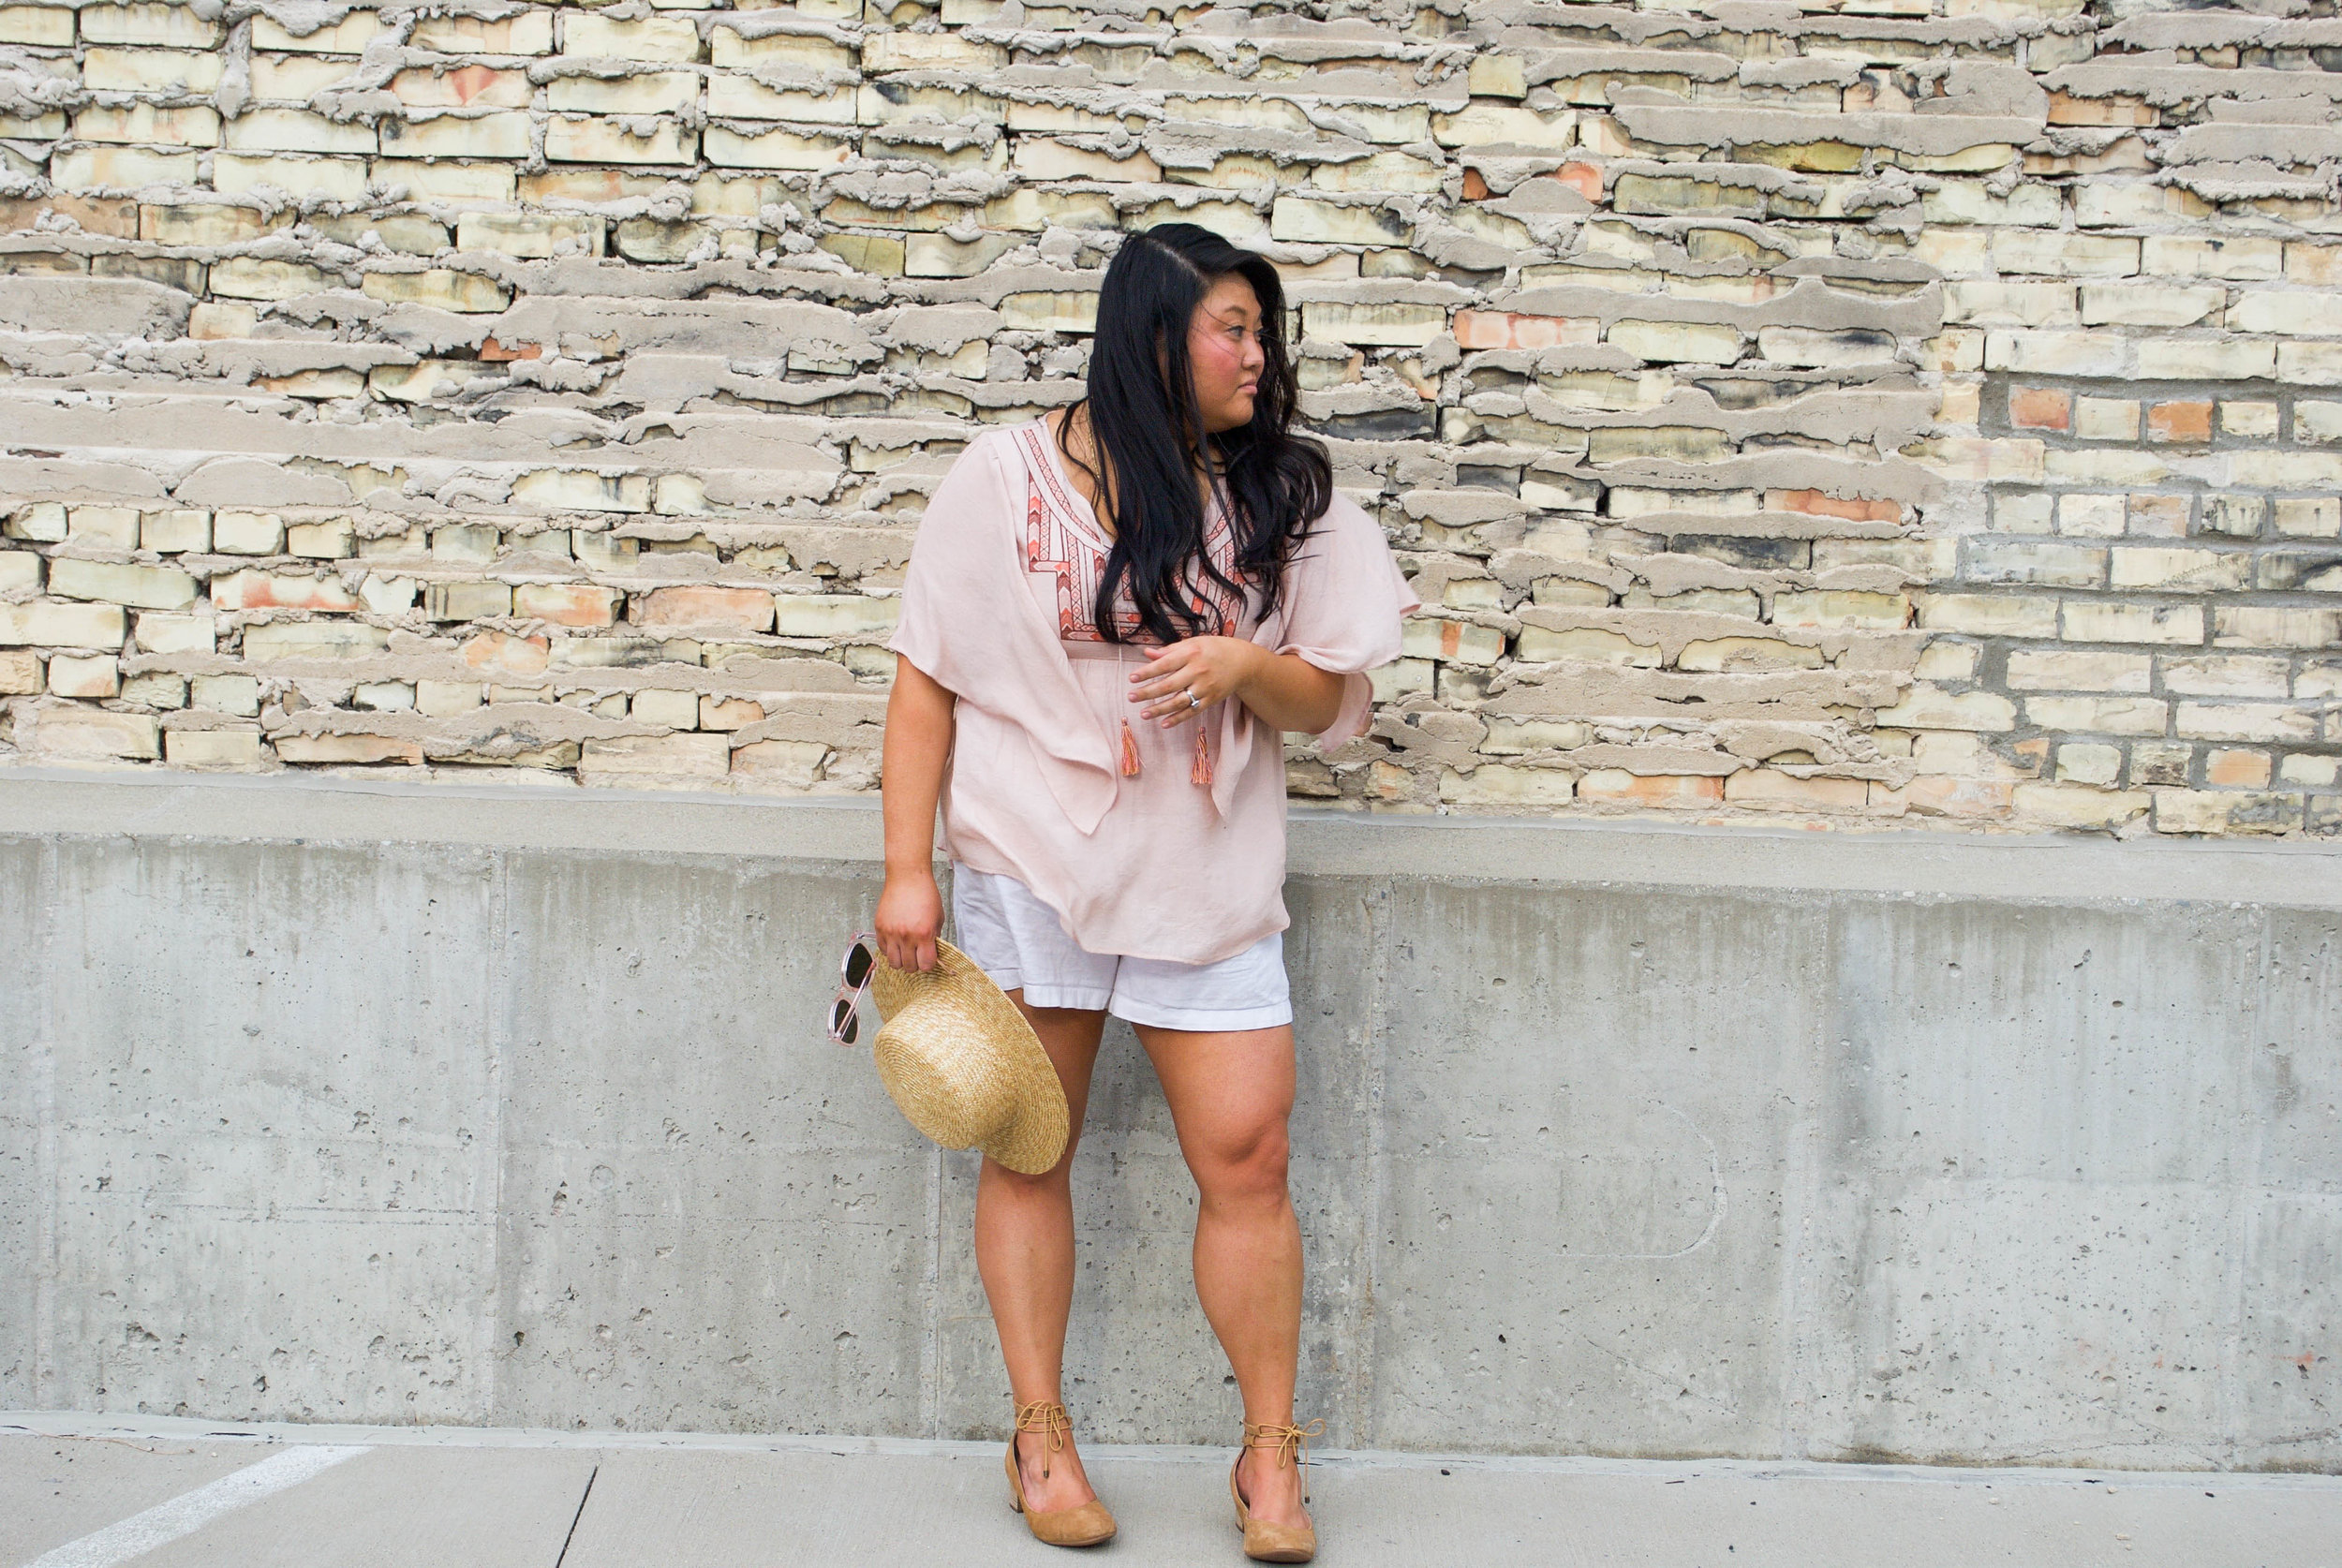 sincerely-ashley-hush-puppies-outfit-inspiration